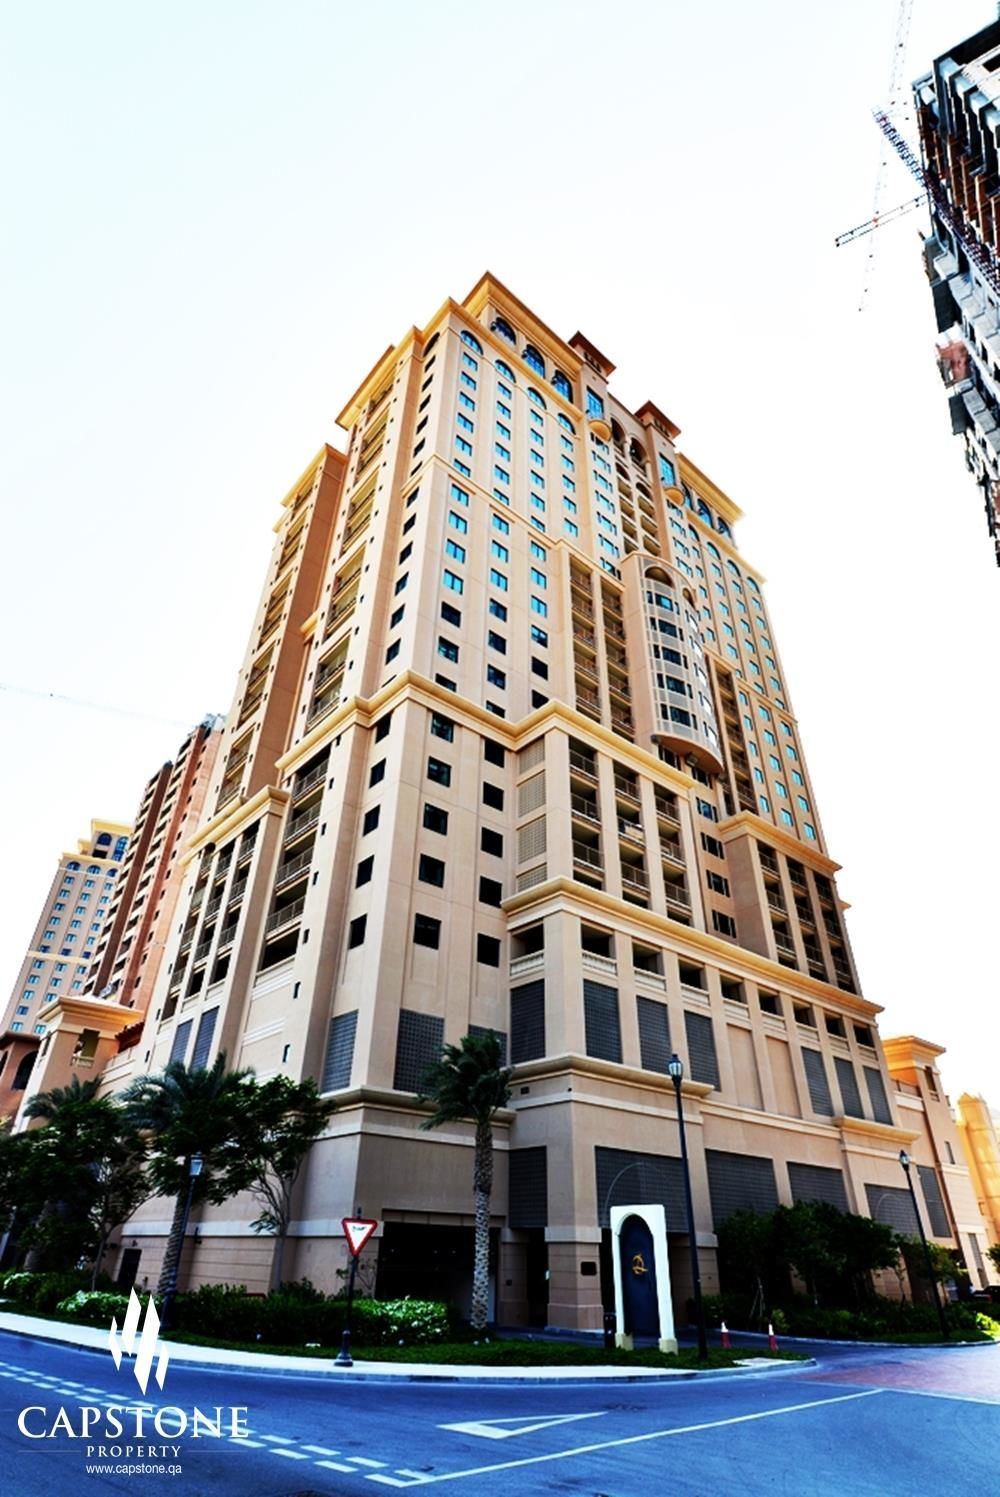 A two bedroom apartment in Tower 24 of Porto Arabia